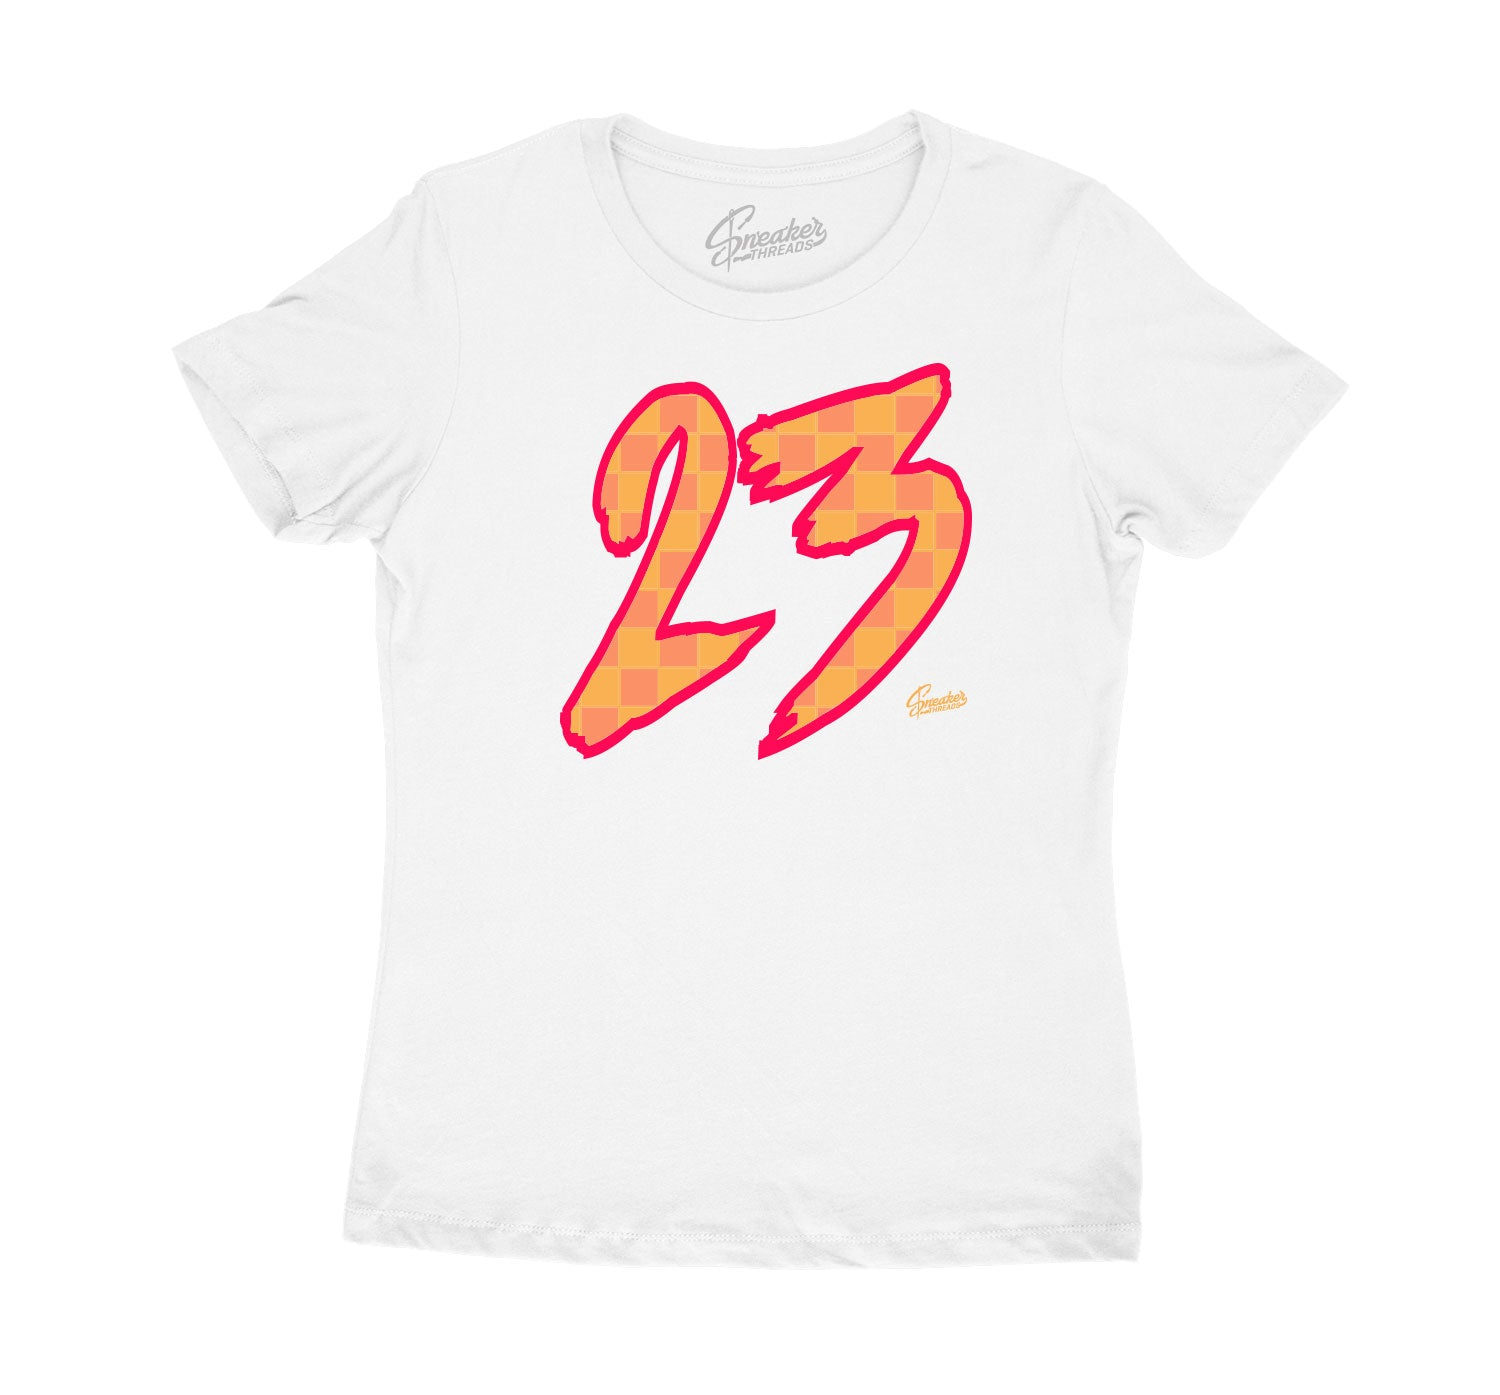 Jordan 12 Hot punch womens sneaker matching womens t shirts designed perfectly